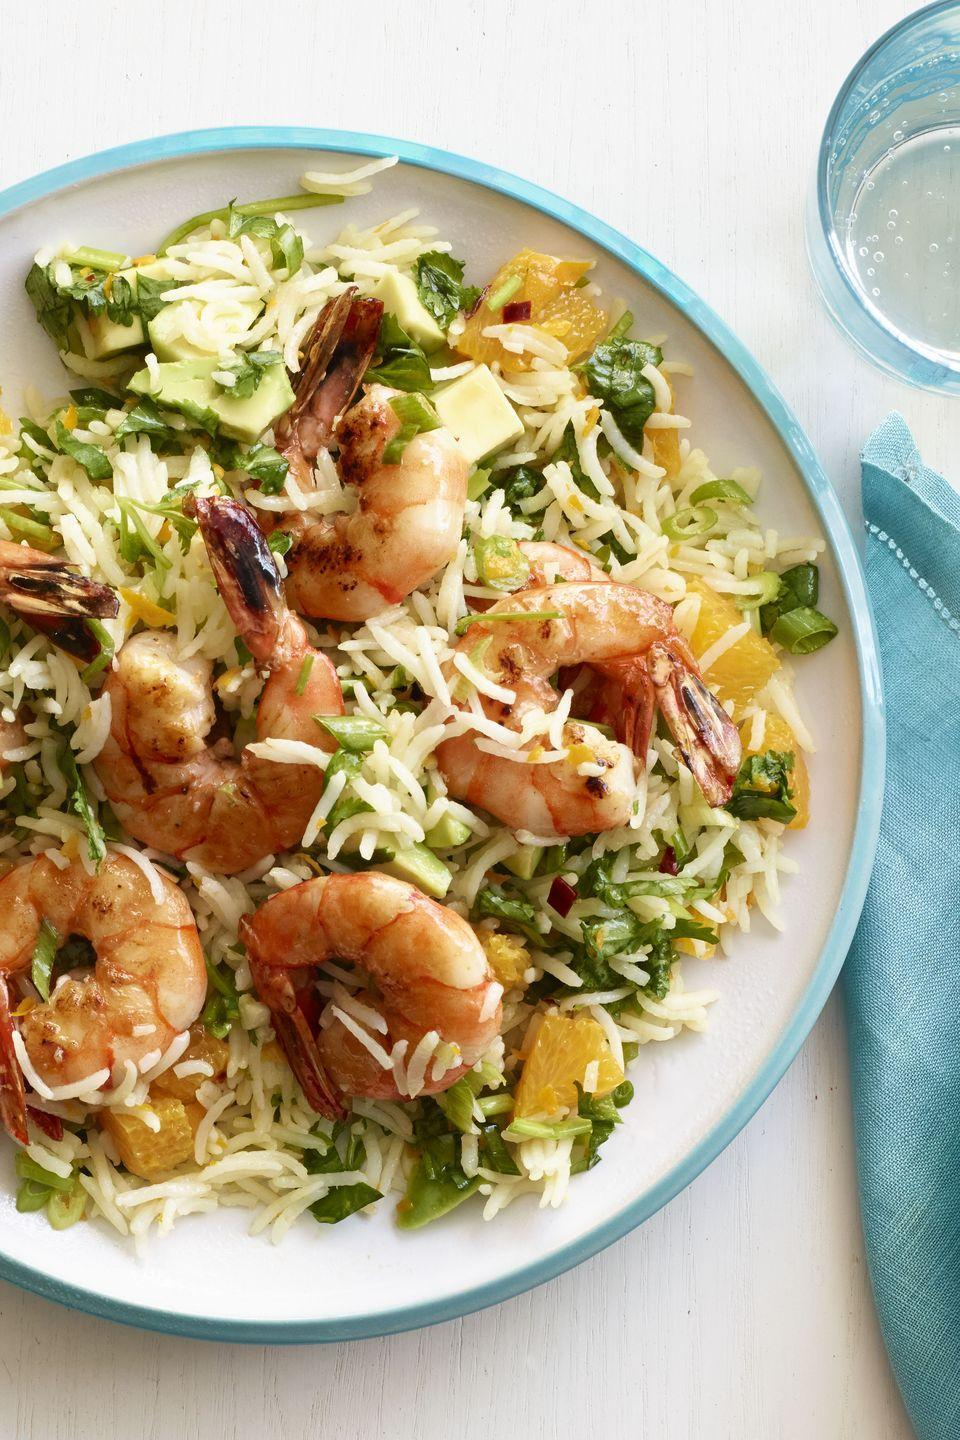 """<p>If she loves seafood, get to work whipping up this simple but impressive meal packed with fresh produce and a touch of spice.</p><p><em><a href=""""https://www.womansday.com/food-recipes/food-drinks/recipes/a13080/zesty-shrimp-chimichurri-rice-recipe-wdy0115/"""" rel=""""nofollow noopener"""" target=""""_blank"""" data-ylk=""""slk:Get the recipe for Zesty Shrimp with Chimichurri Rice."""" class=""""link rapid-noclick-resp"""">Get the recipe for Zesty Shrimp with Chimichurri Rice.</a></em></p><p><strong>RELATED:</strong> <a href=""""https://www.womansday.com/food-recipes/g2237/brunch-recipes/"""" rel=""""nofollow noopener"""" target=""""_blank"""" data-ylk=""""slk:40 Brunch Recipes for a Picture-Perfect Mother's Day Celebration"""" class=""""link rapid-noclick-resp"""">40 Brunch Recipes for a Picture-Perfect Mother's Day Celebration</a></p>"""